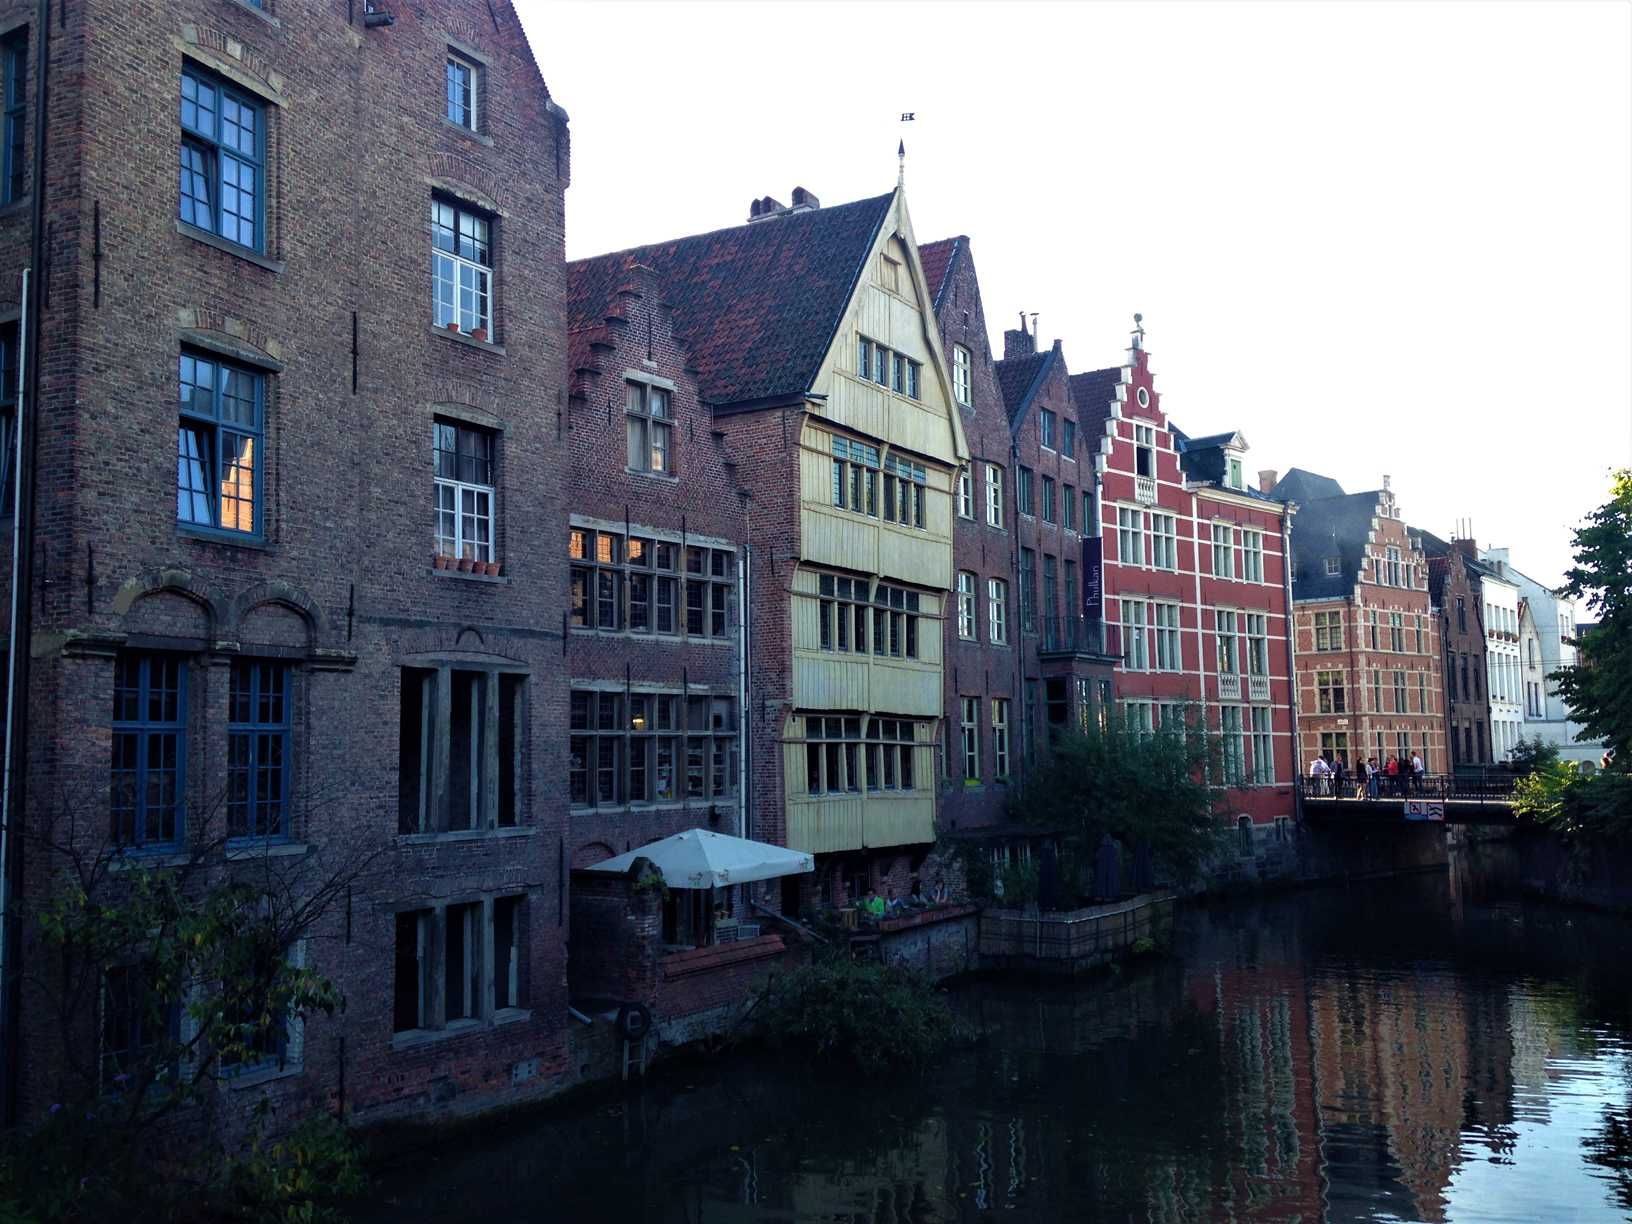 A picture of colorful buildings with gables on a canal in Ghent, Belgium.